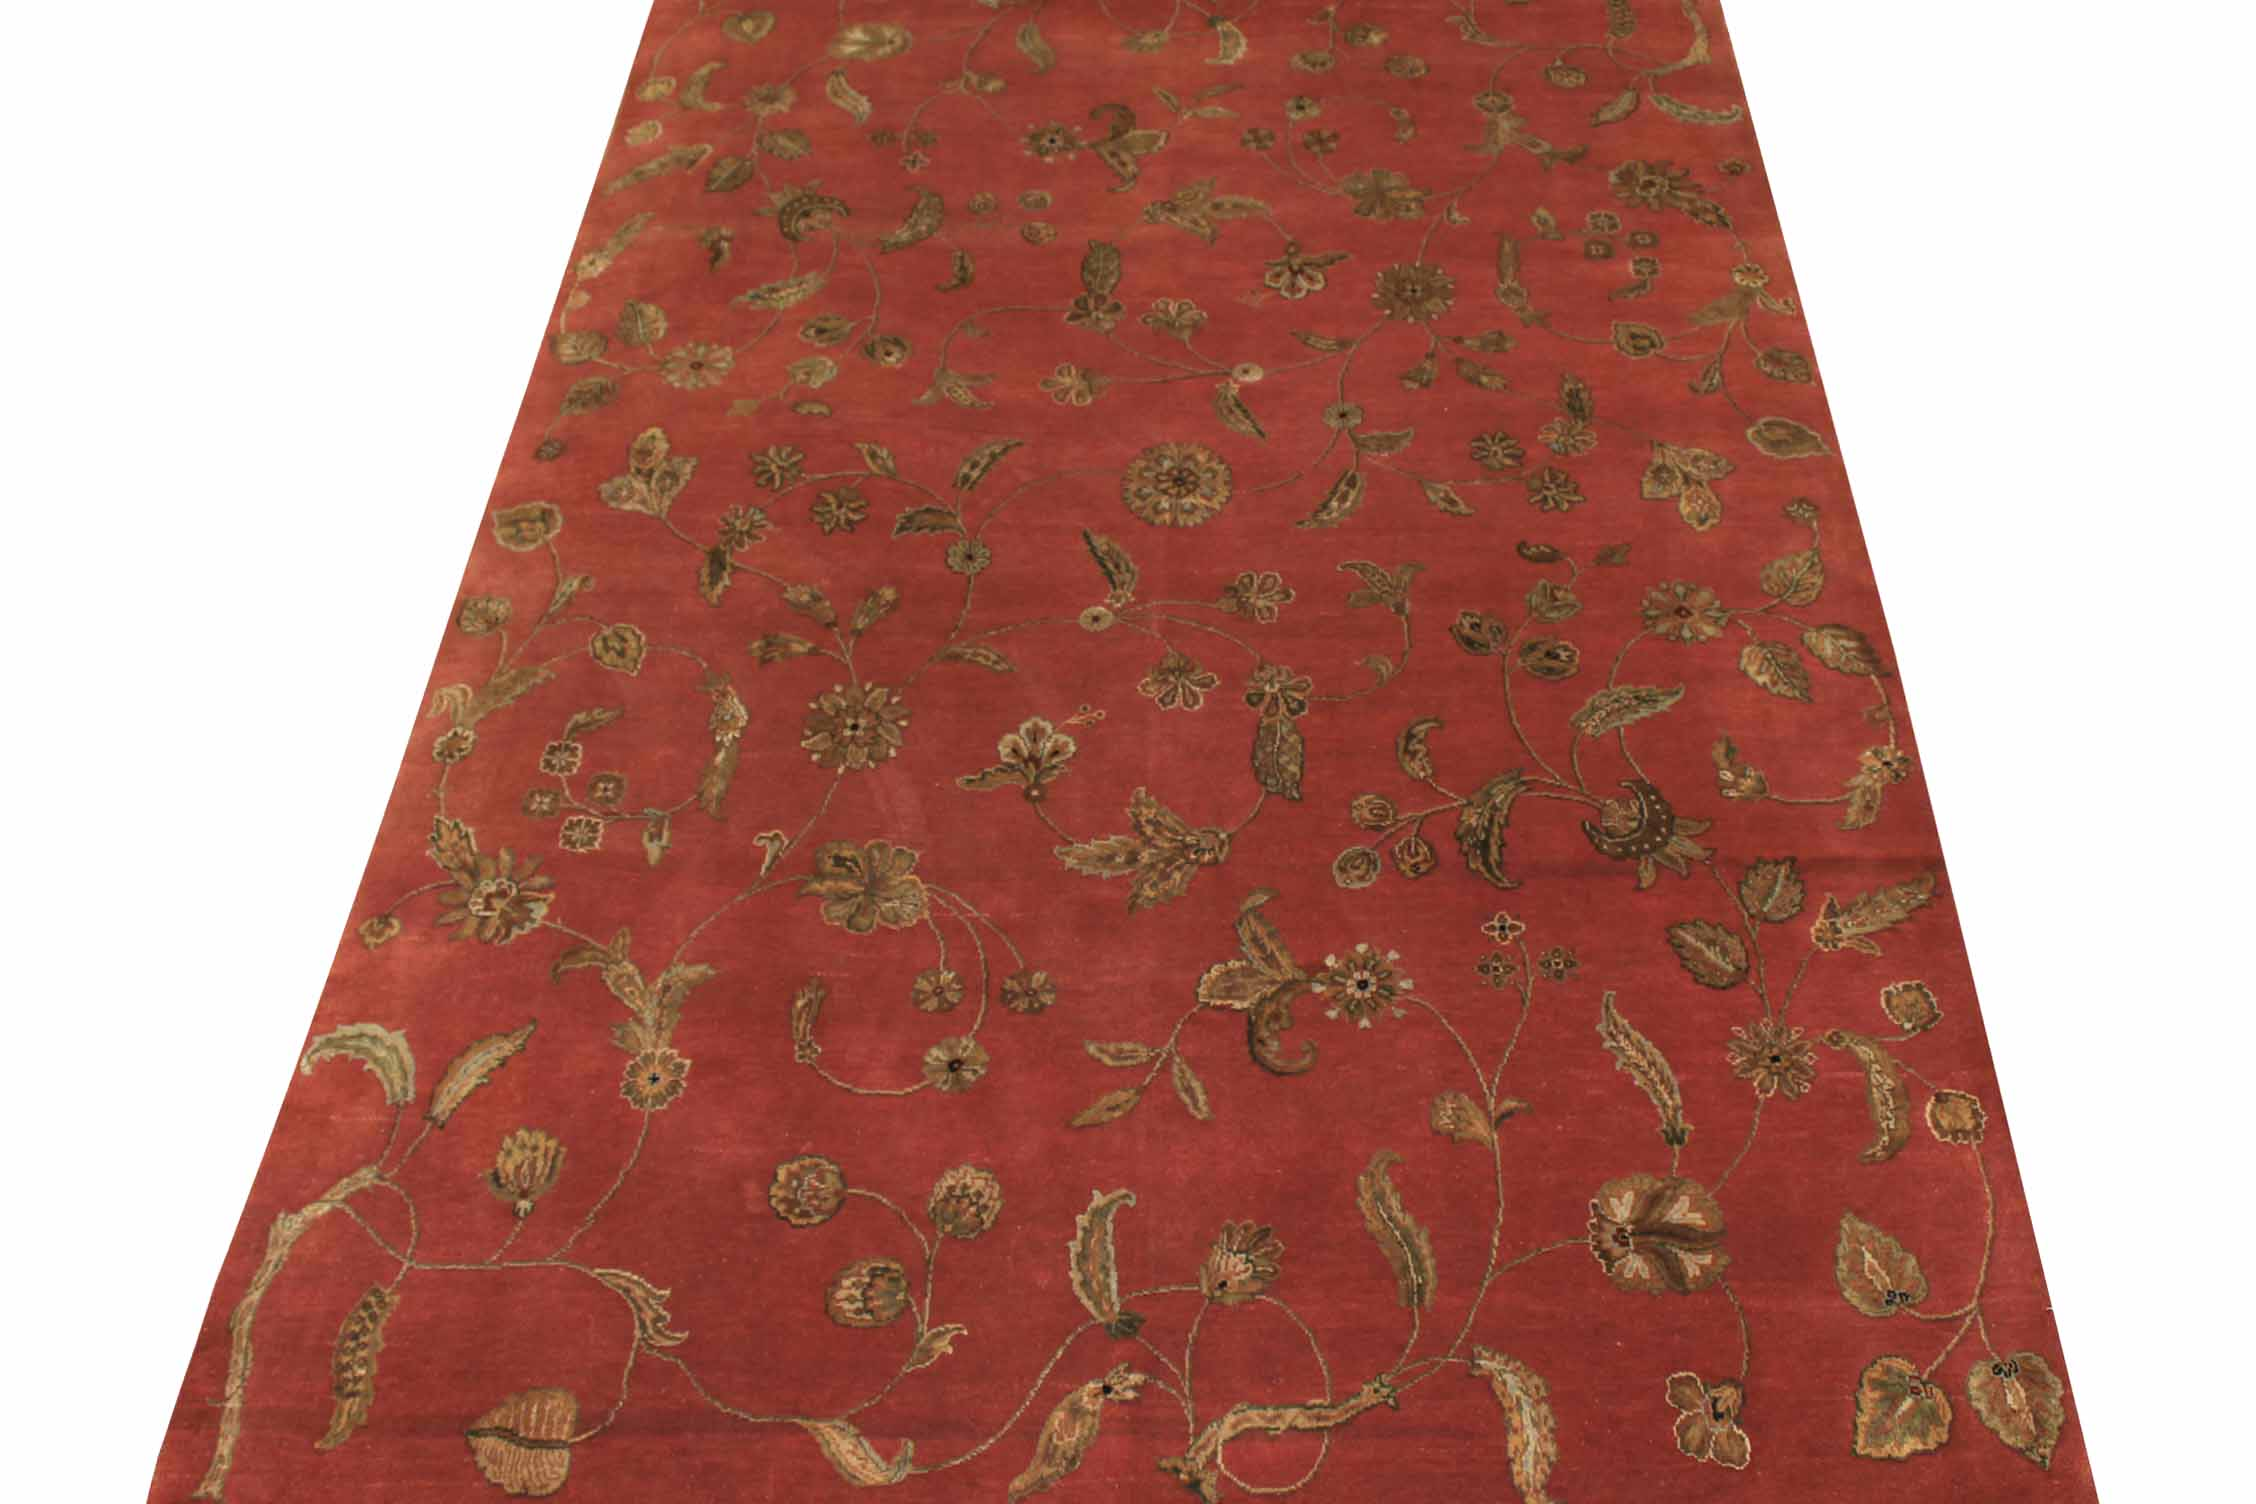 6x9 Silk Flower Hand Knotted Wool Area Rug - MR10865